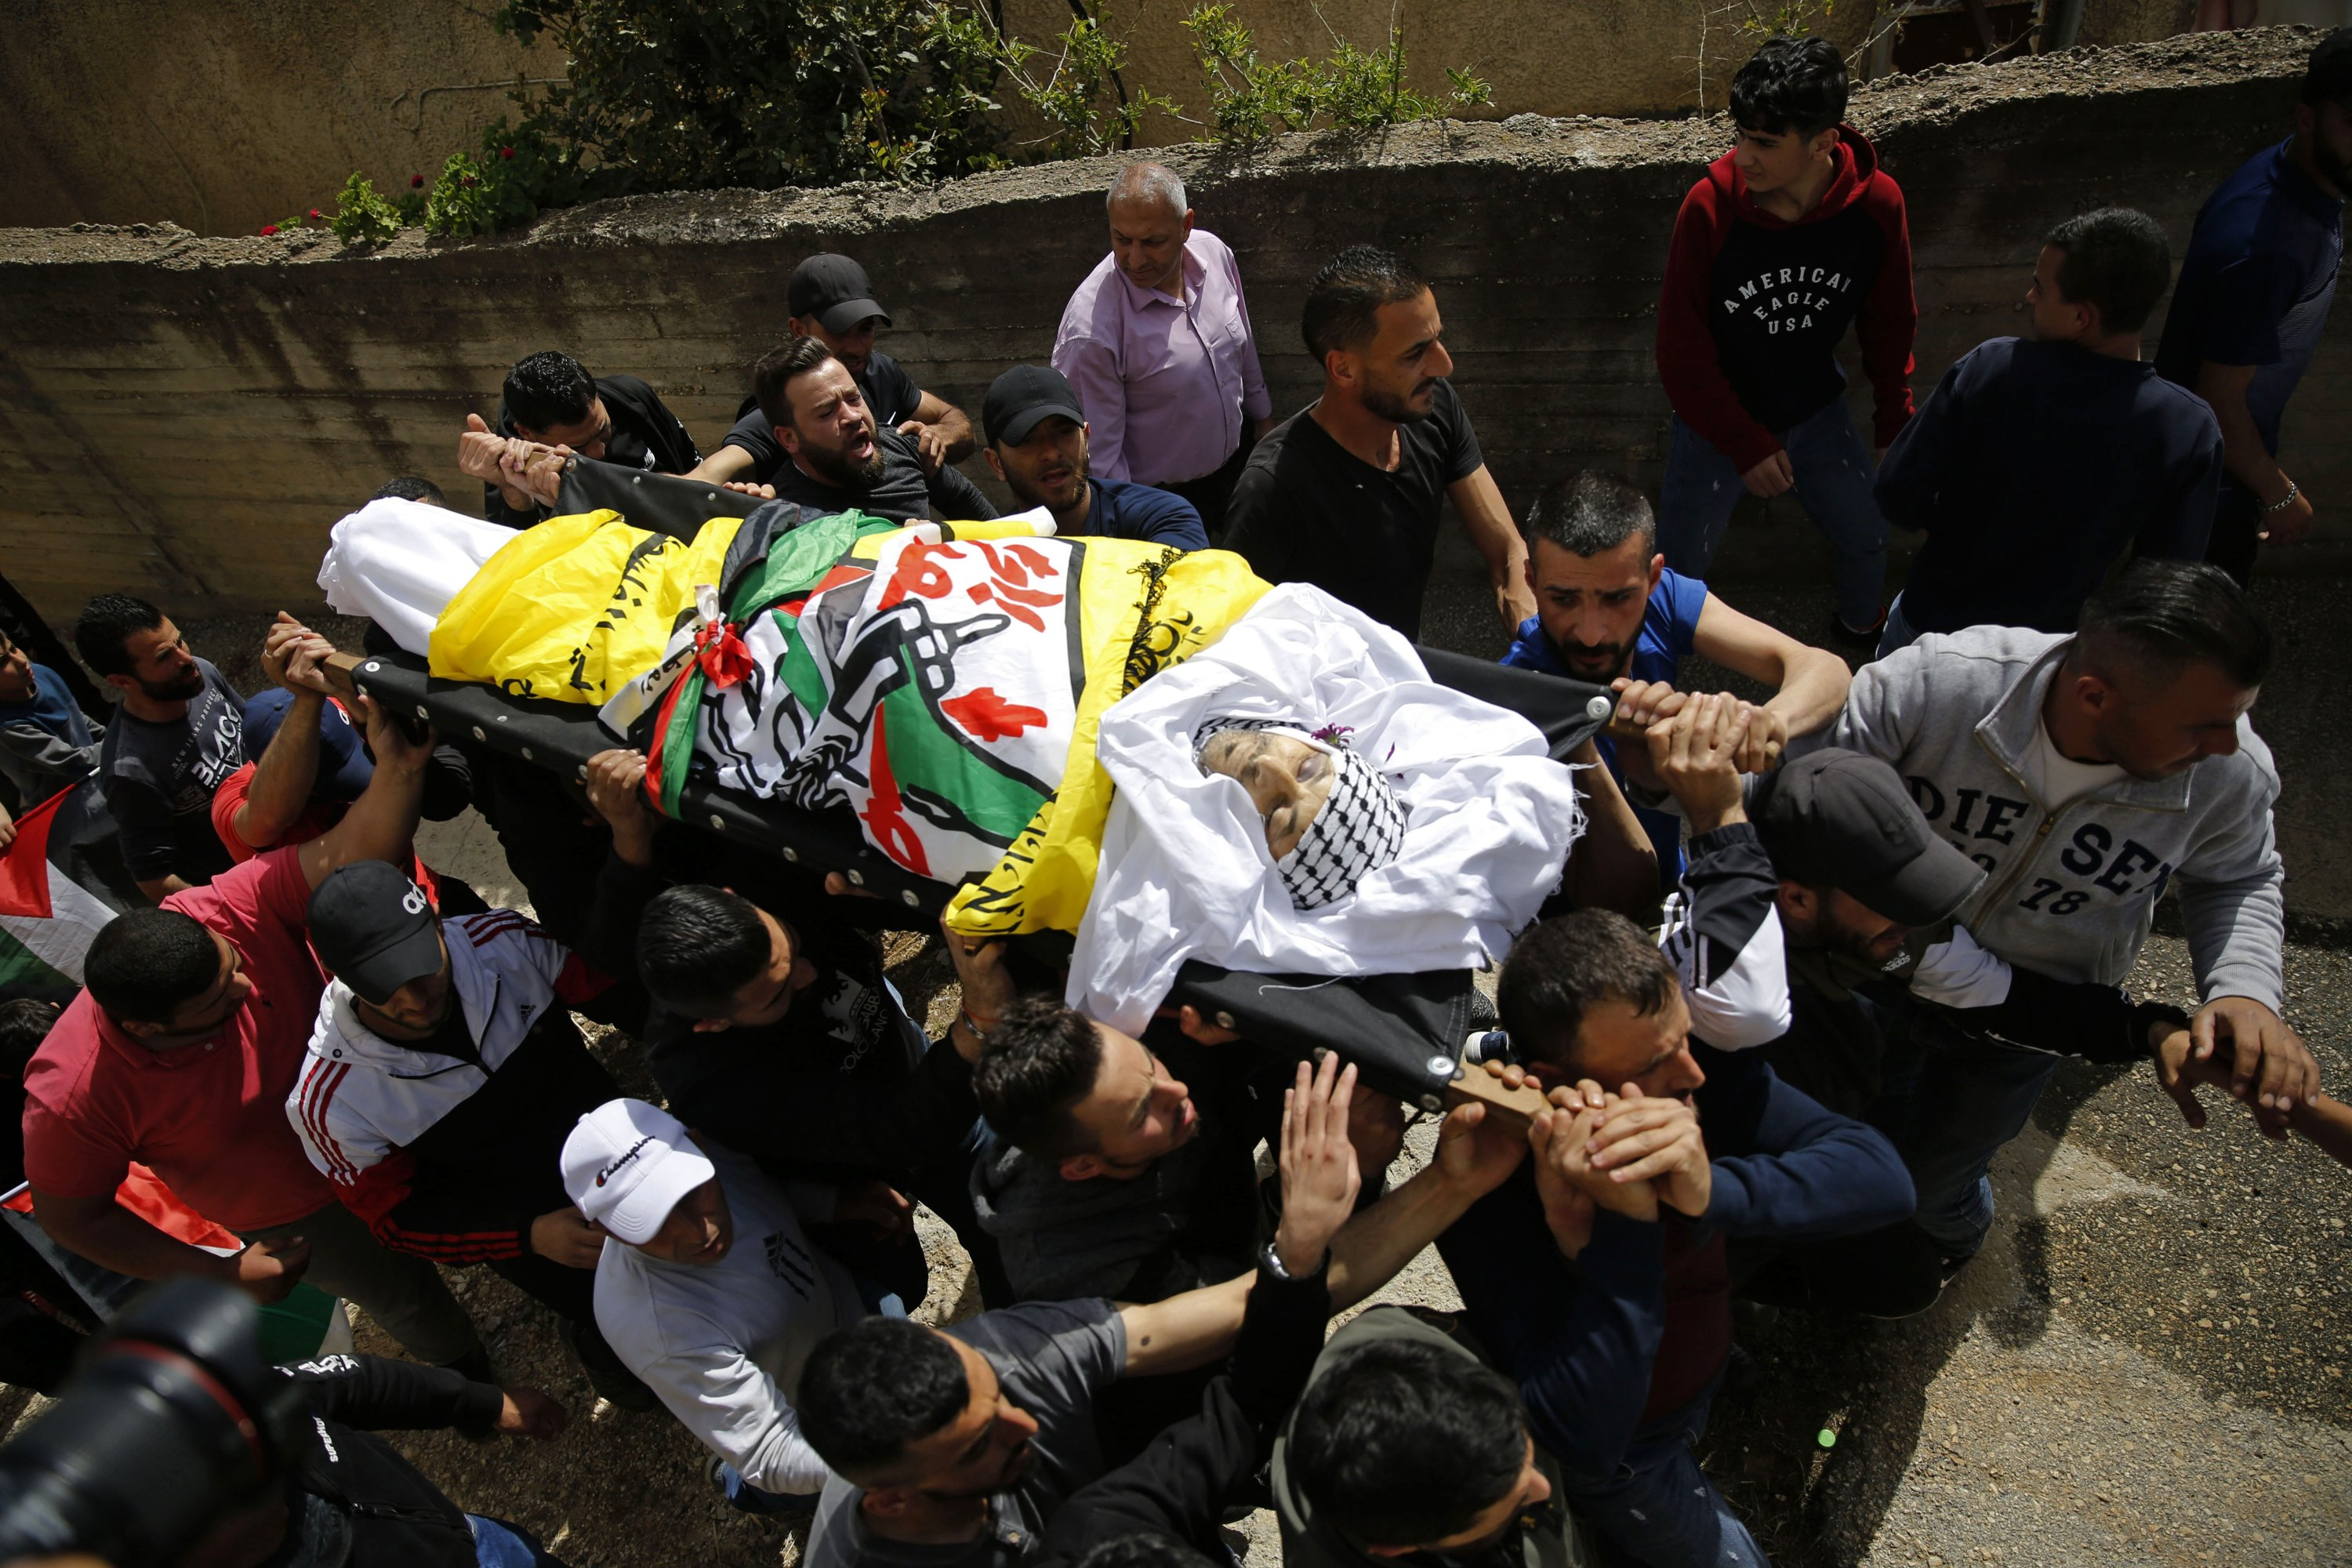 Palestinians carry the body of Osama Mansour who was killed by Israel soldiers at a temporary vehicle checkpoint in the occupied West Bank near Jerusalem, during his funeral, in the village of Biddu near the West Bank city of Ramallah,  April 6, 2021. (AP Photo)